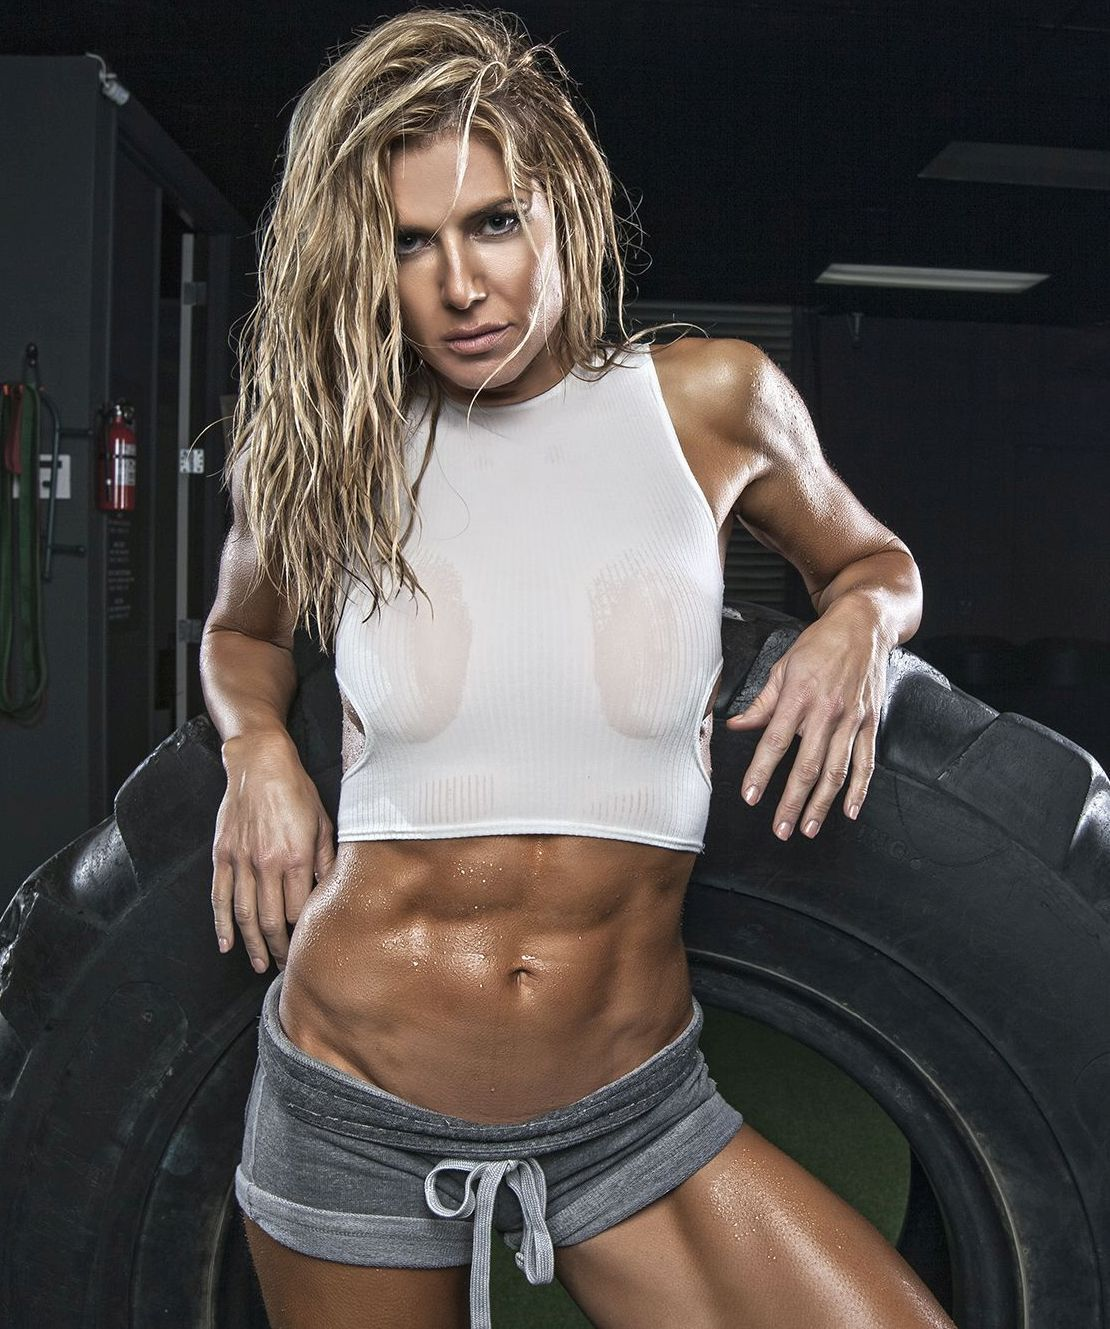 Bold and beautiful Torrie Wilson leaning against a tyre in a gym